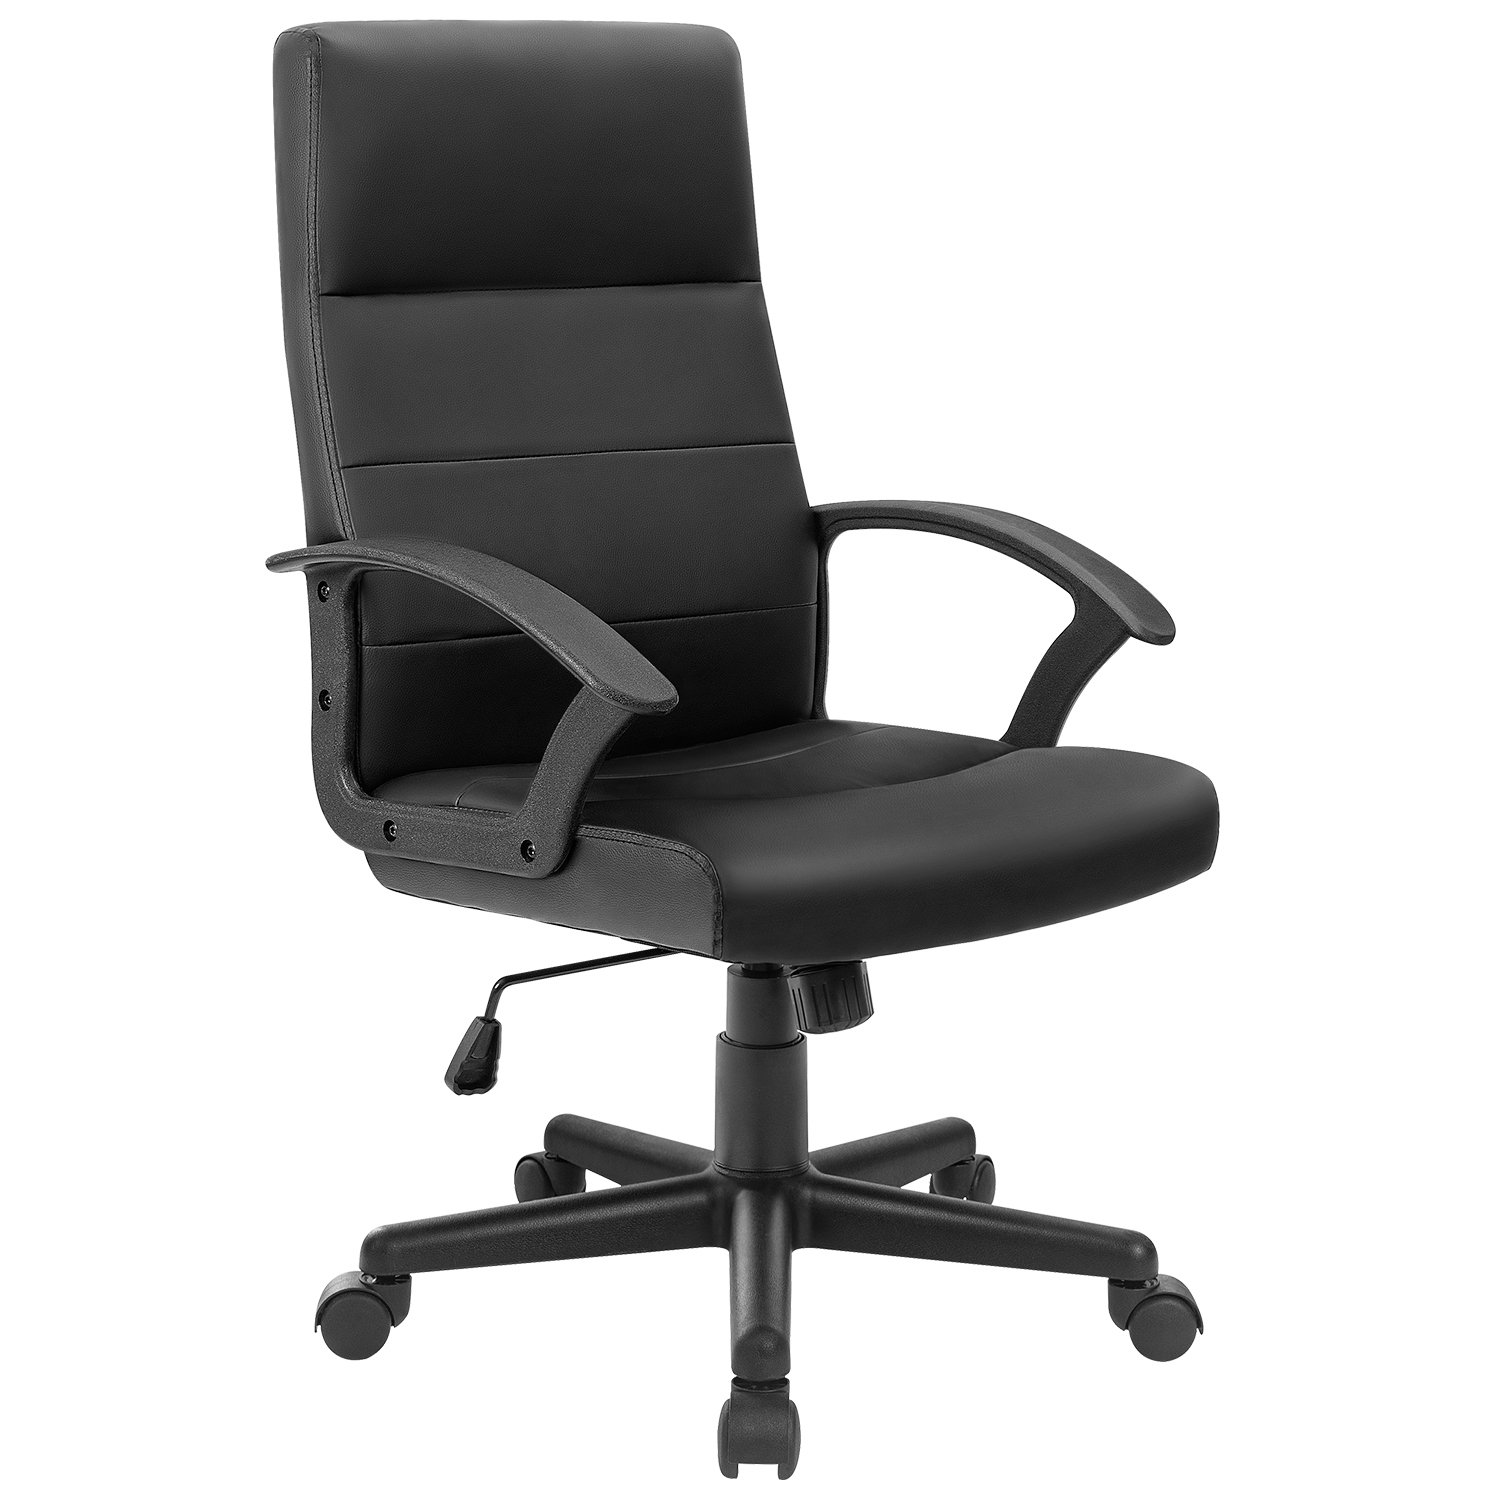 Furmax Mid Back Office Chair Executive Desk Computer Leather Chair with Armrest - Ergonomic Swivel Task Chair with Lumbar Support (Black)